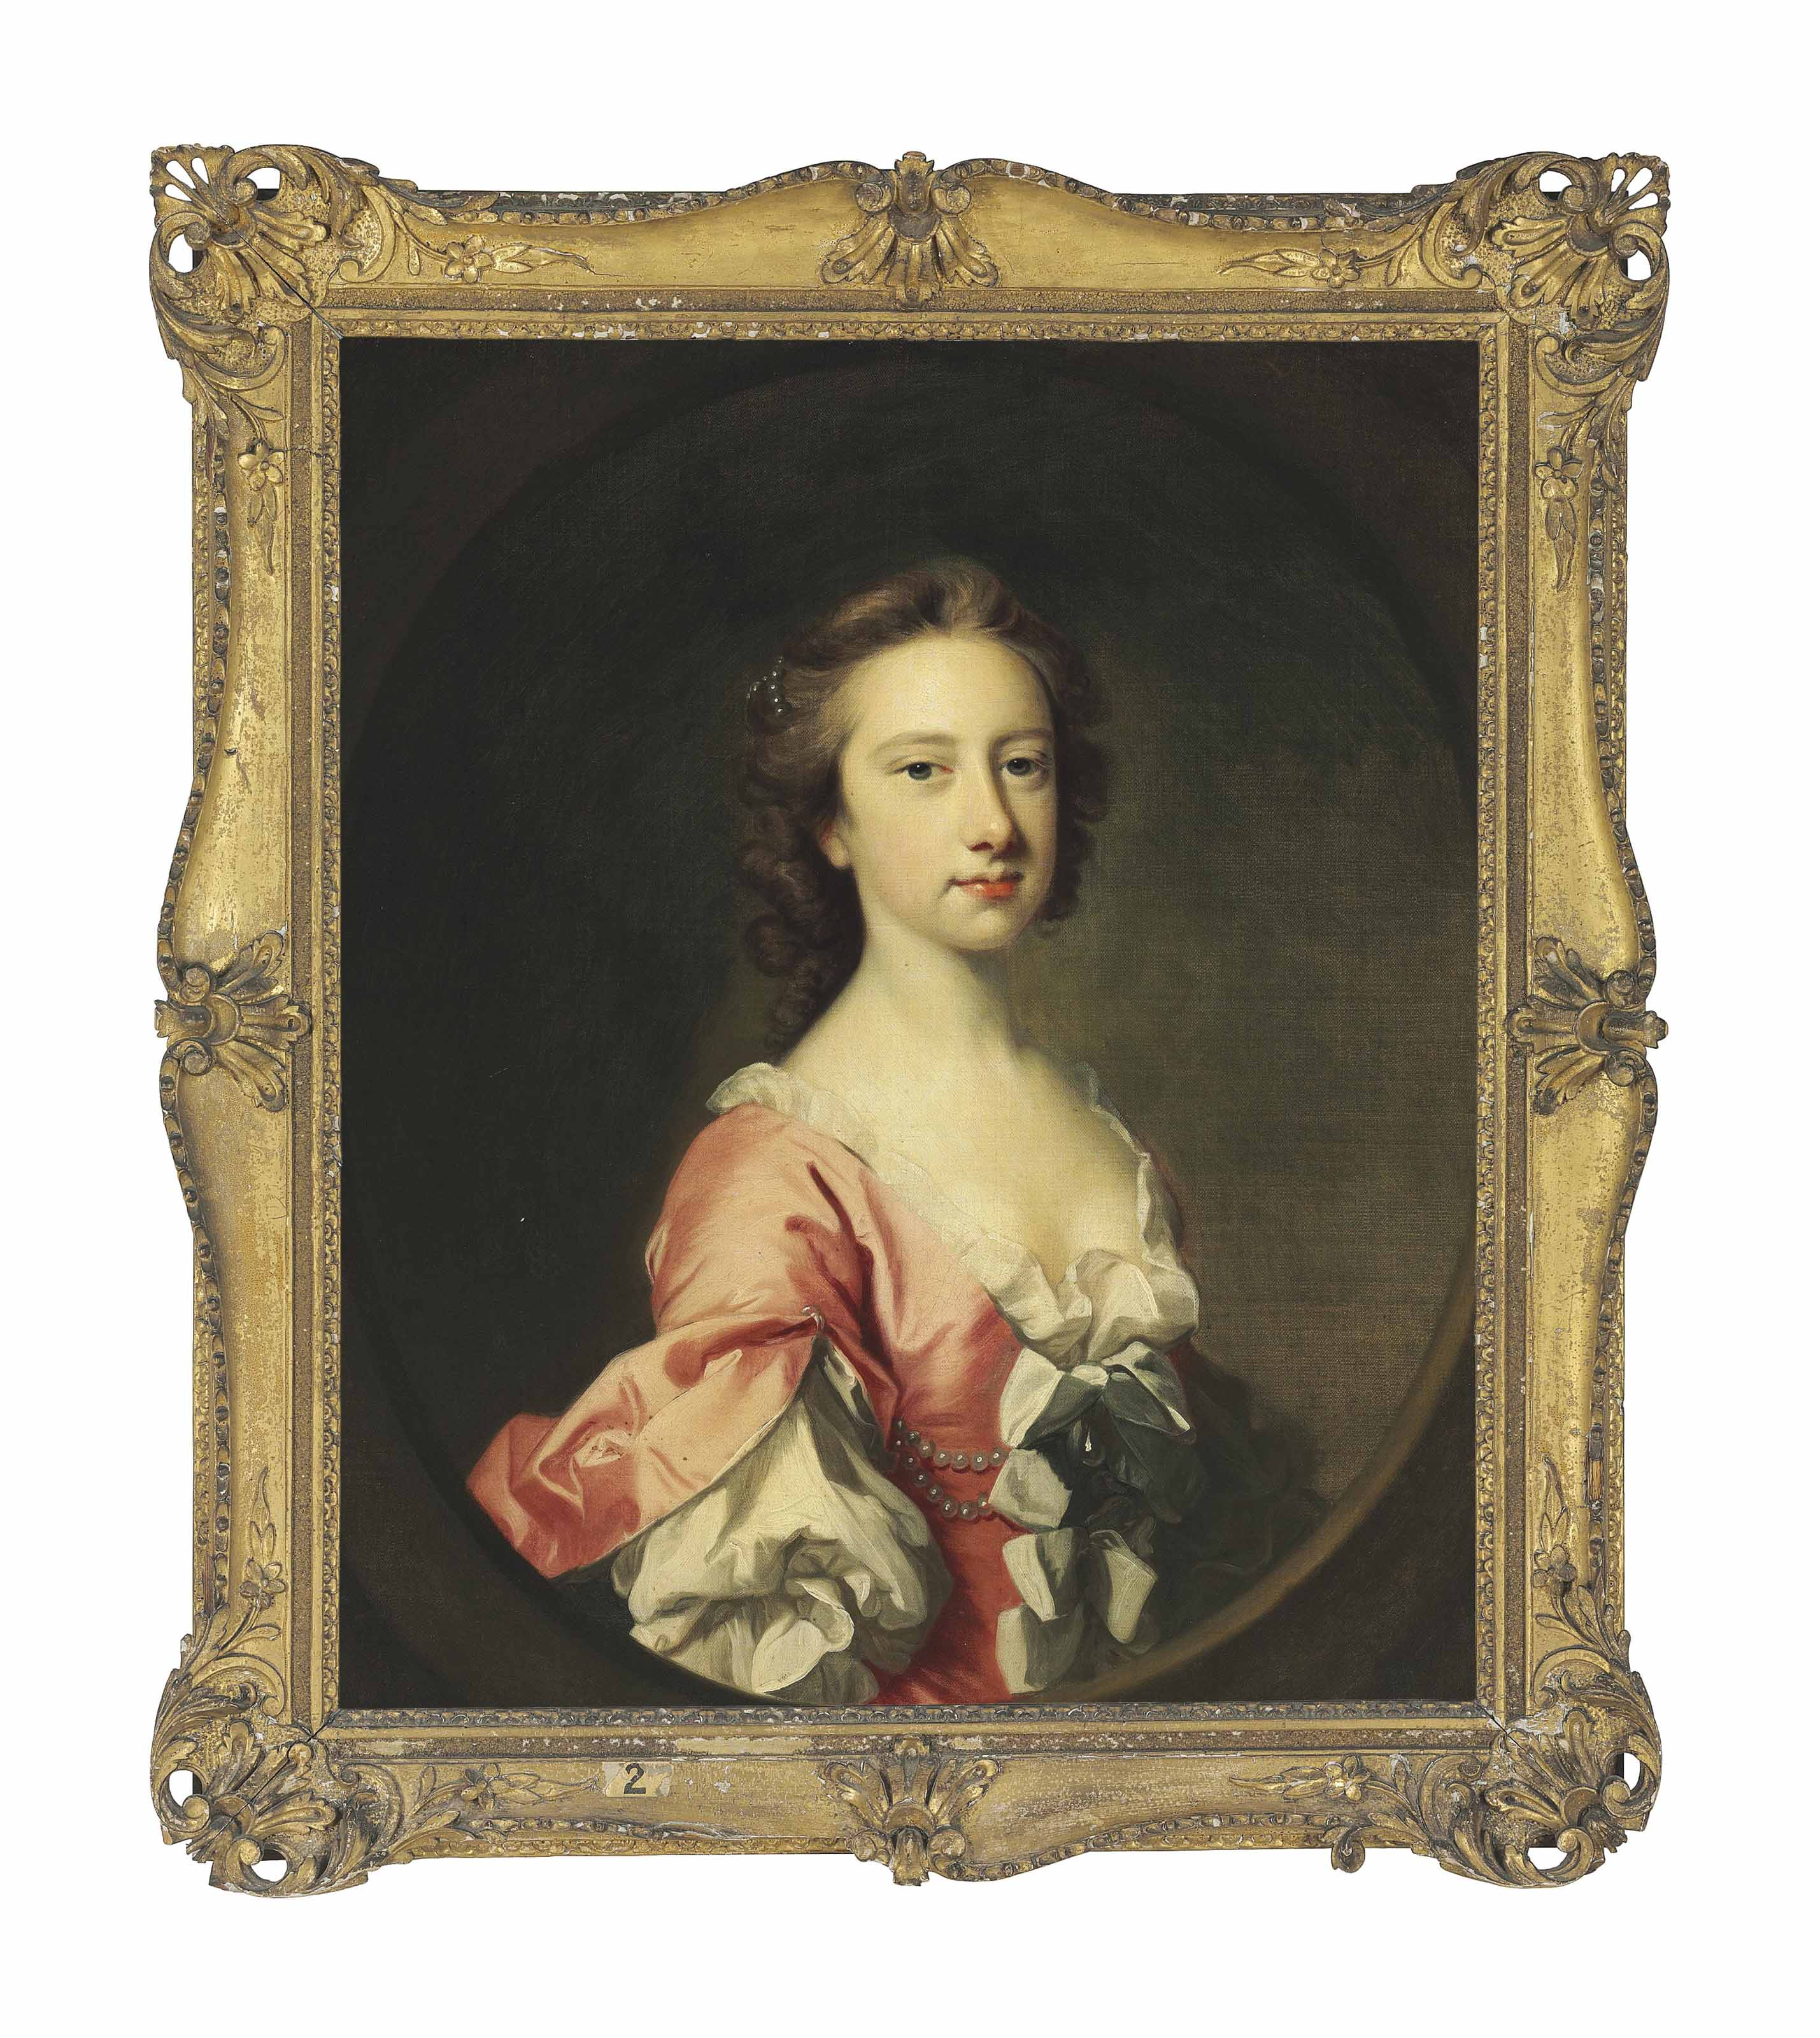 Portrait of Lady Anne Brudenell (d. 1786), half-length, in a pink dress with cuffed sleeves and pearls in her hair, in a painted oval